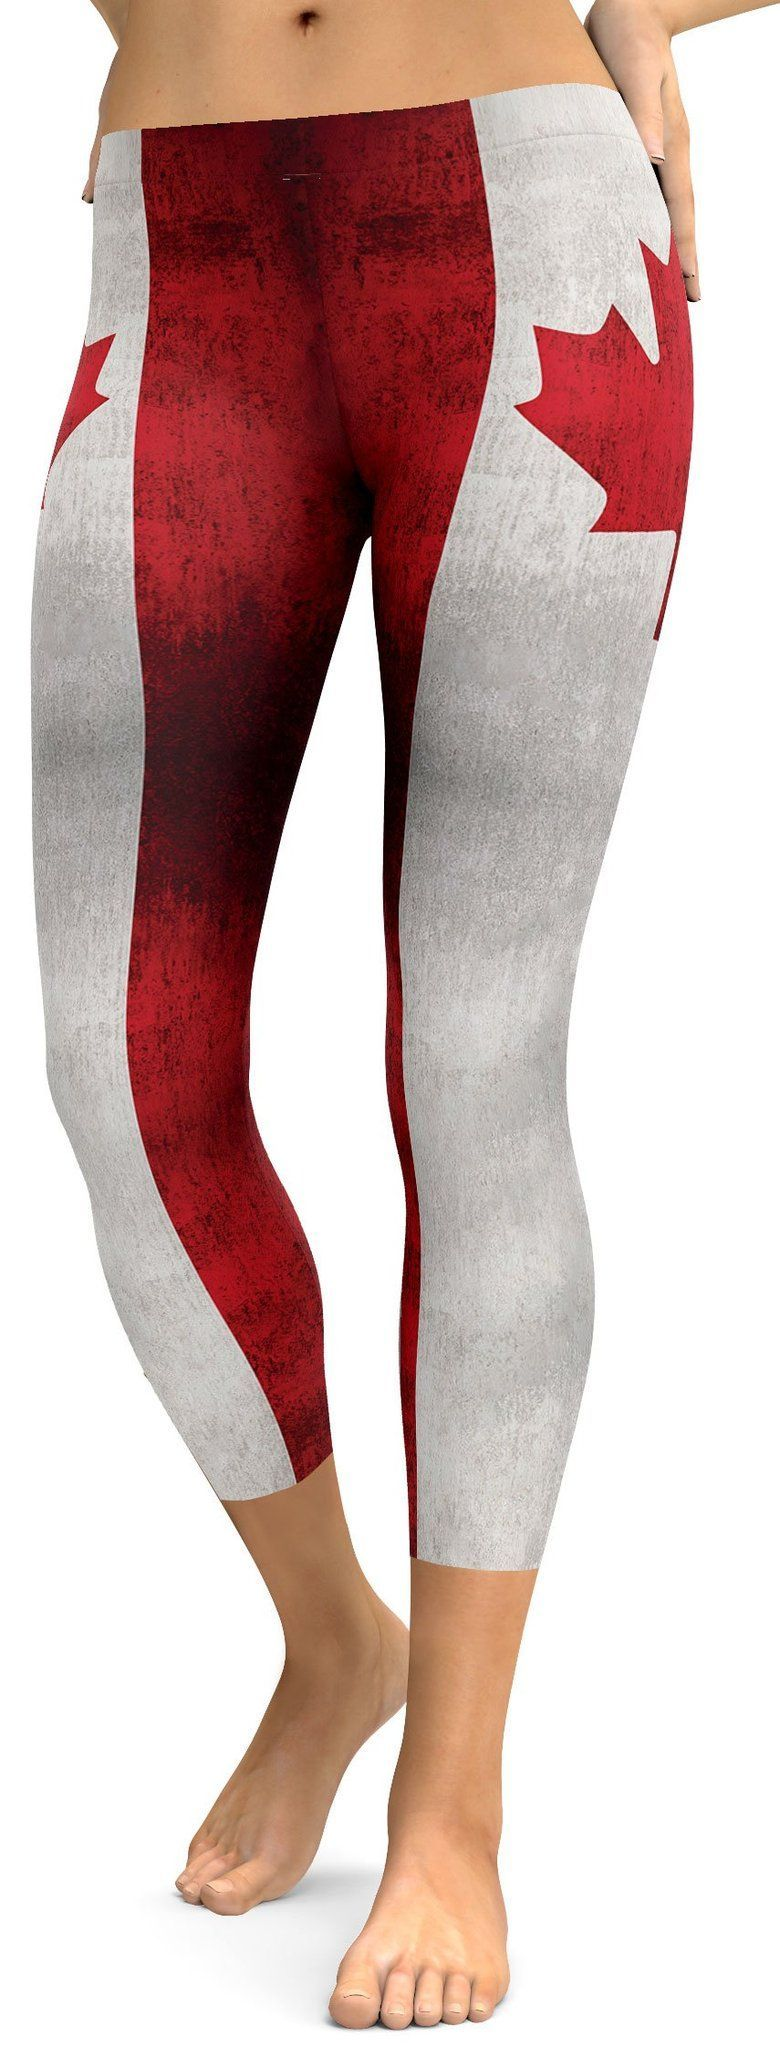 Grunge Canadian Flag Capris #grungeoutfits To expand our flag collection we added the Canadian Flag. The Grunge look gives these Grunge Canadian Flag Capris that extra spunk. Labor day is coming up, so get your outfit together with these capris. Dress up with a white blouse and white heels or with some boots, whatever you do wear them with pride.